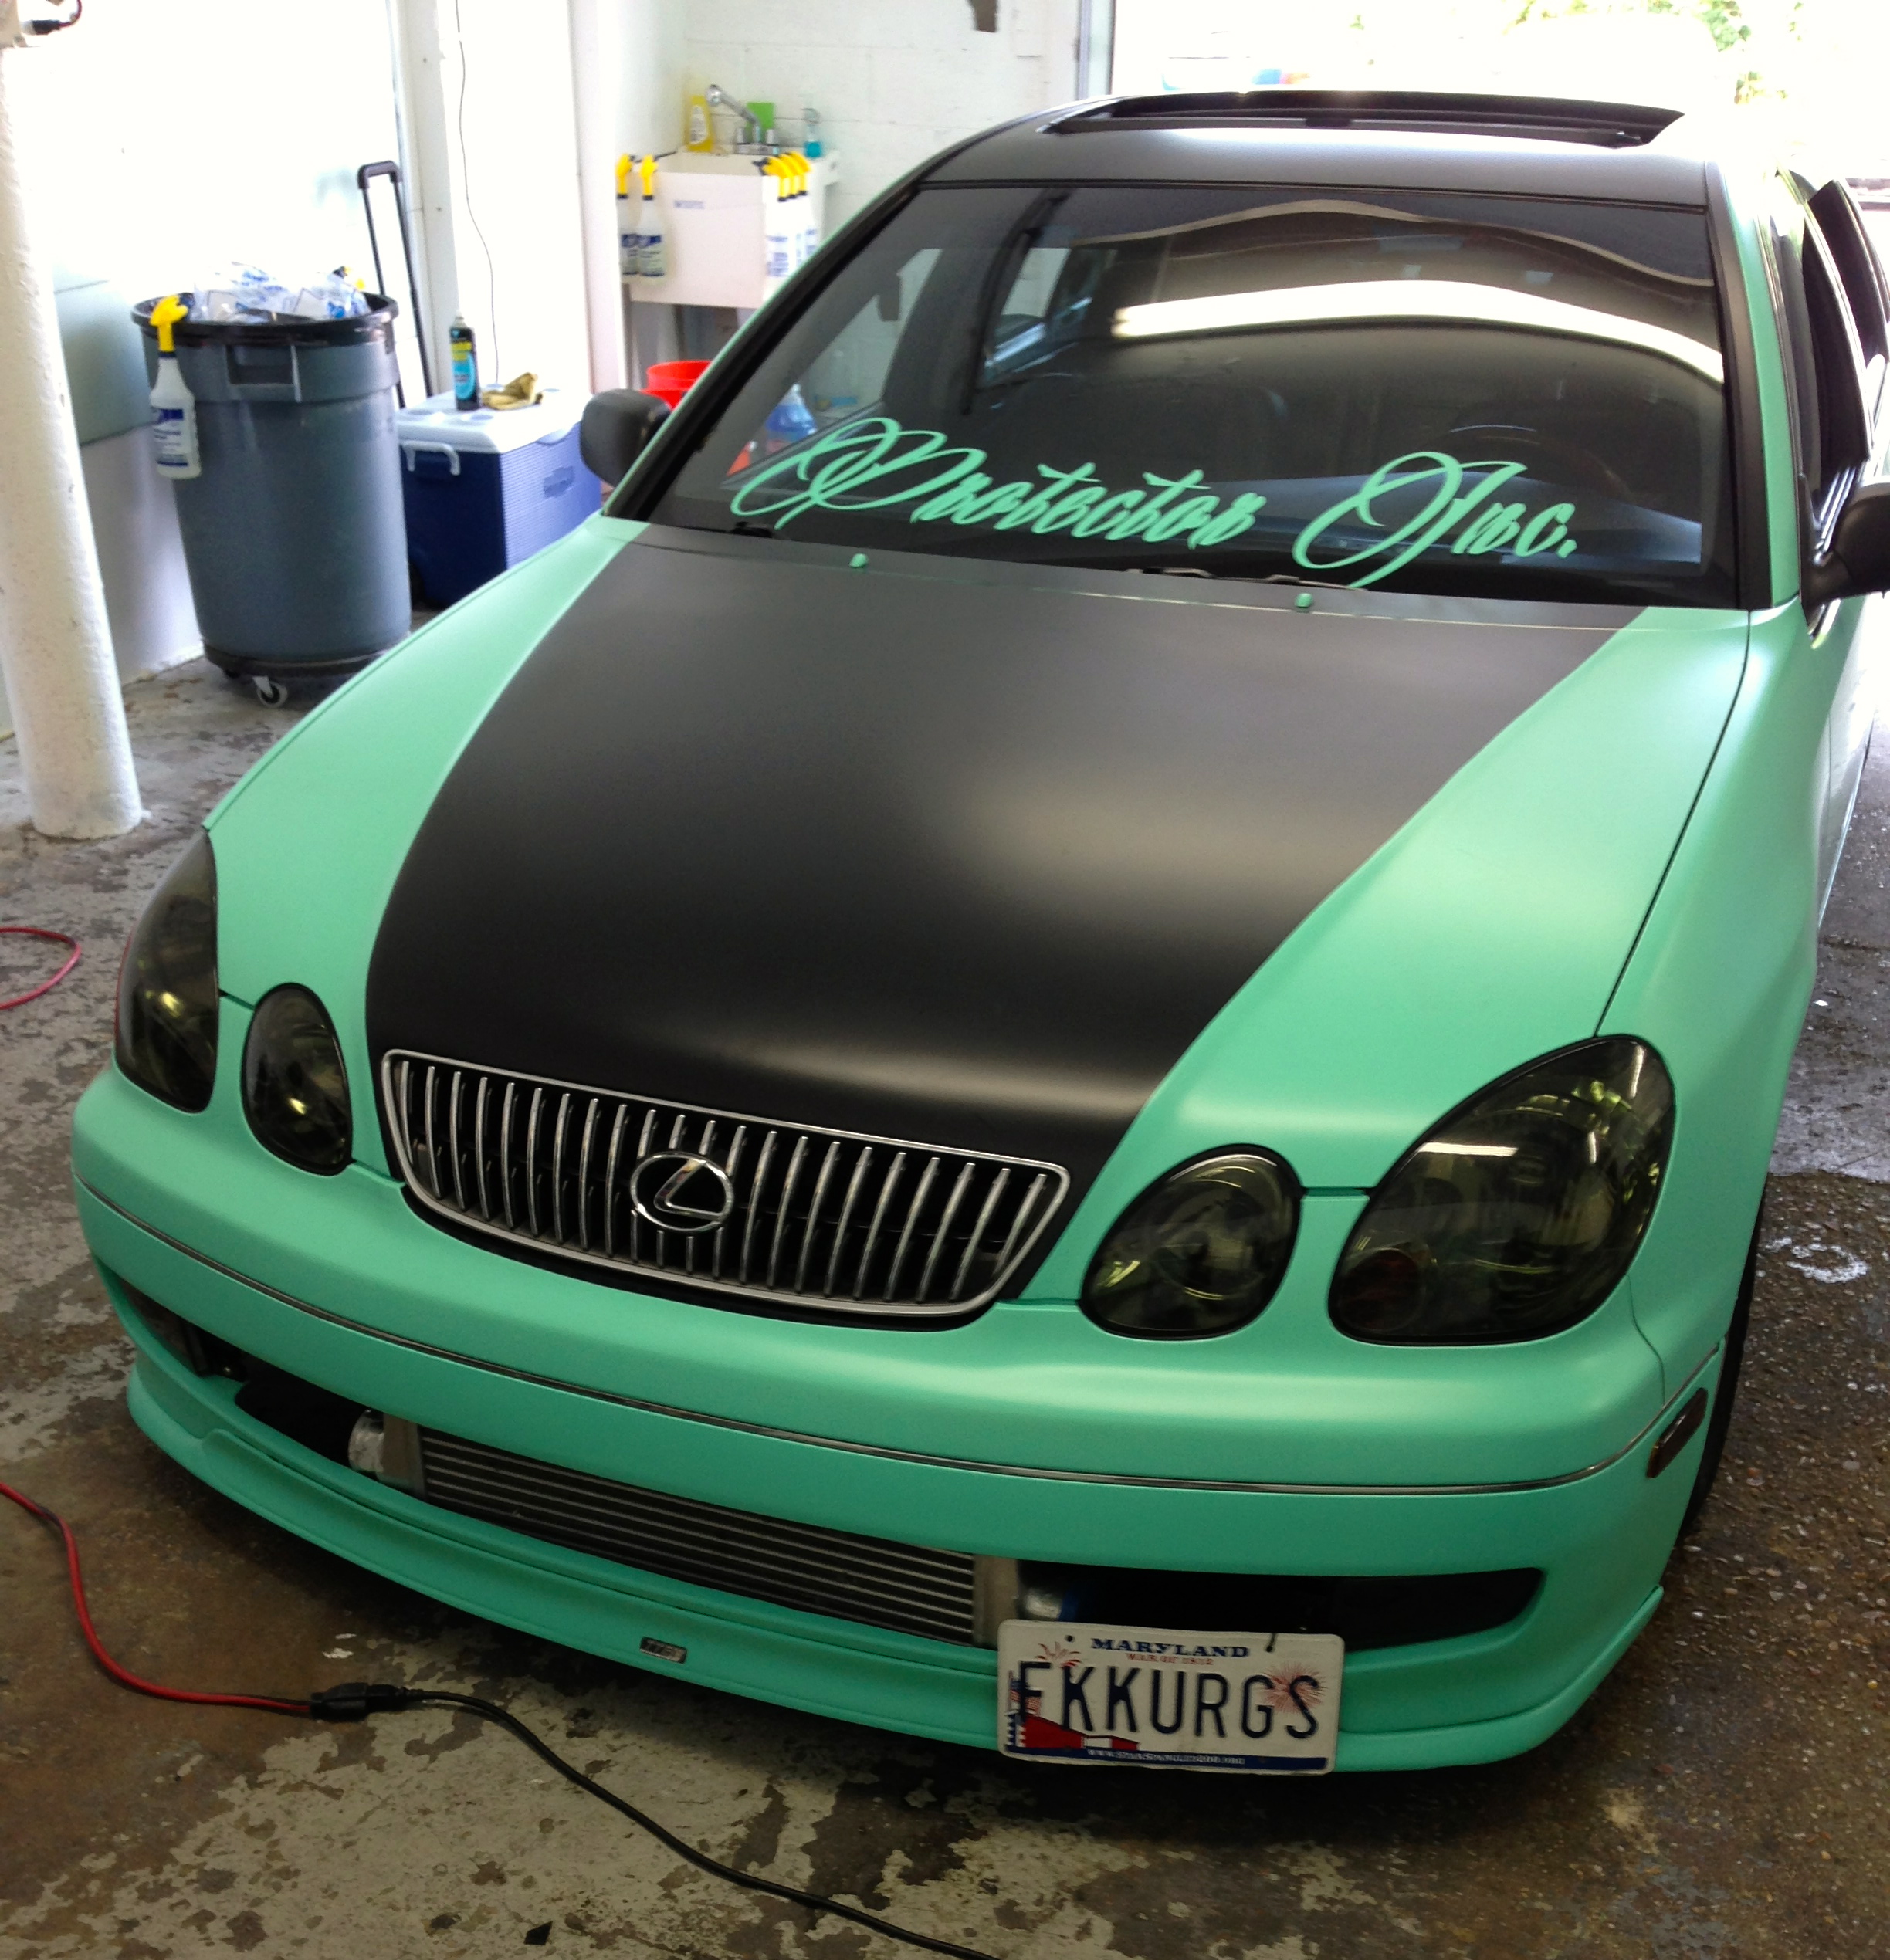 Lexus Paint Job